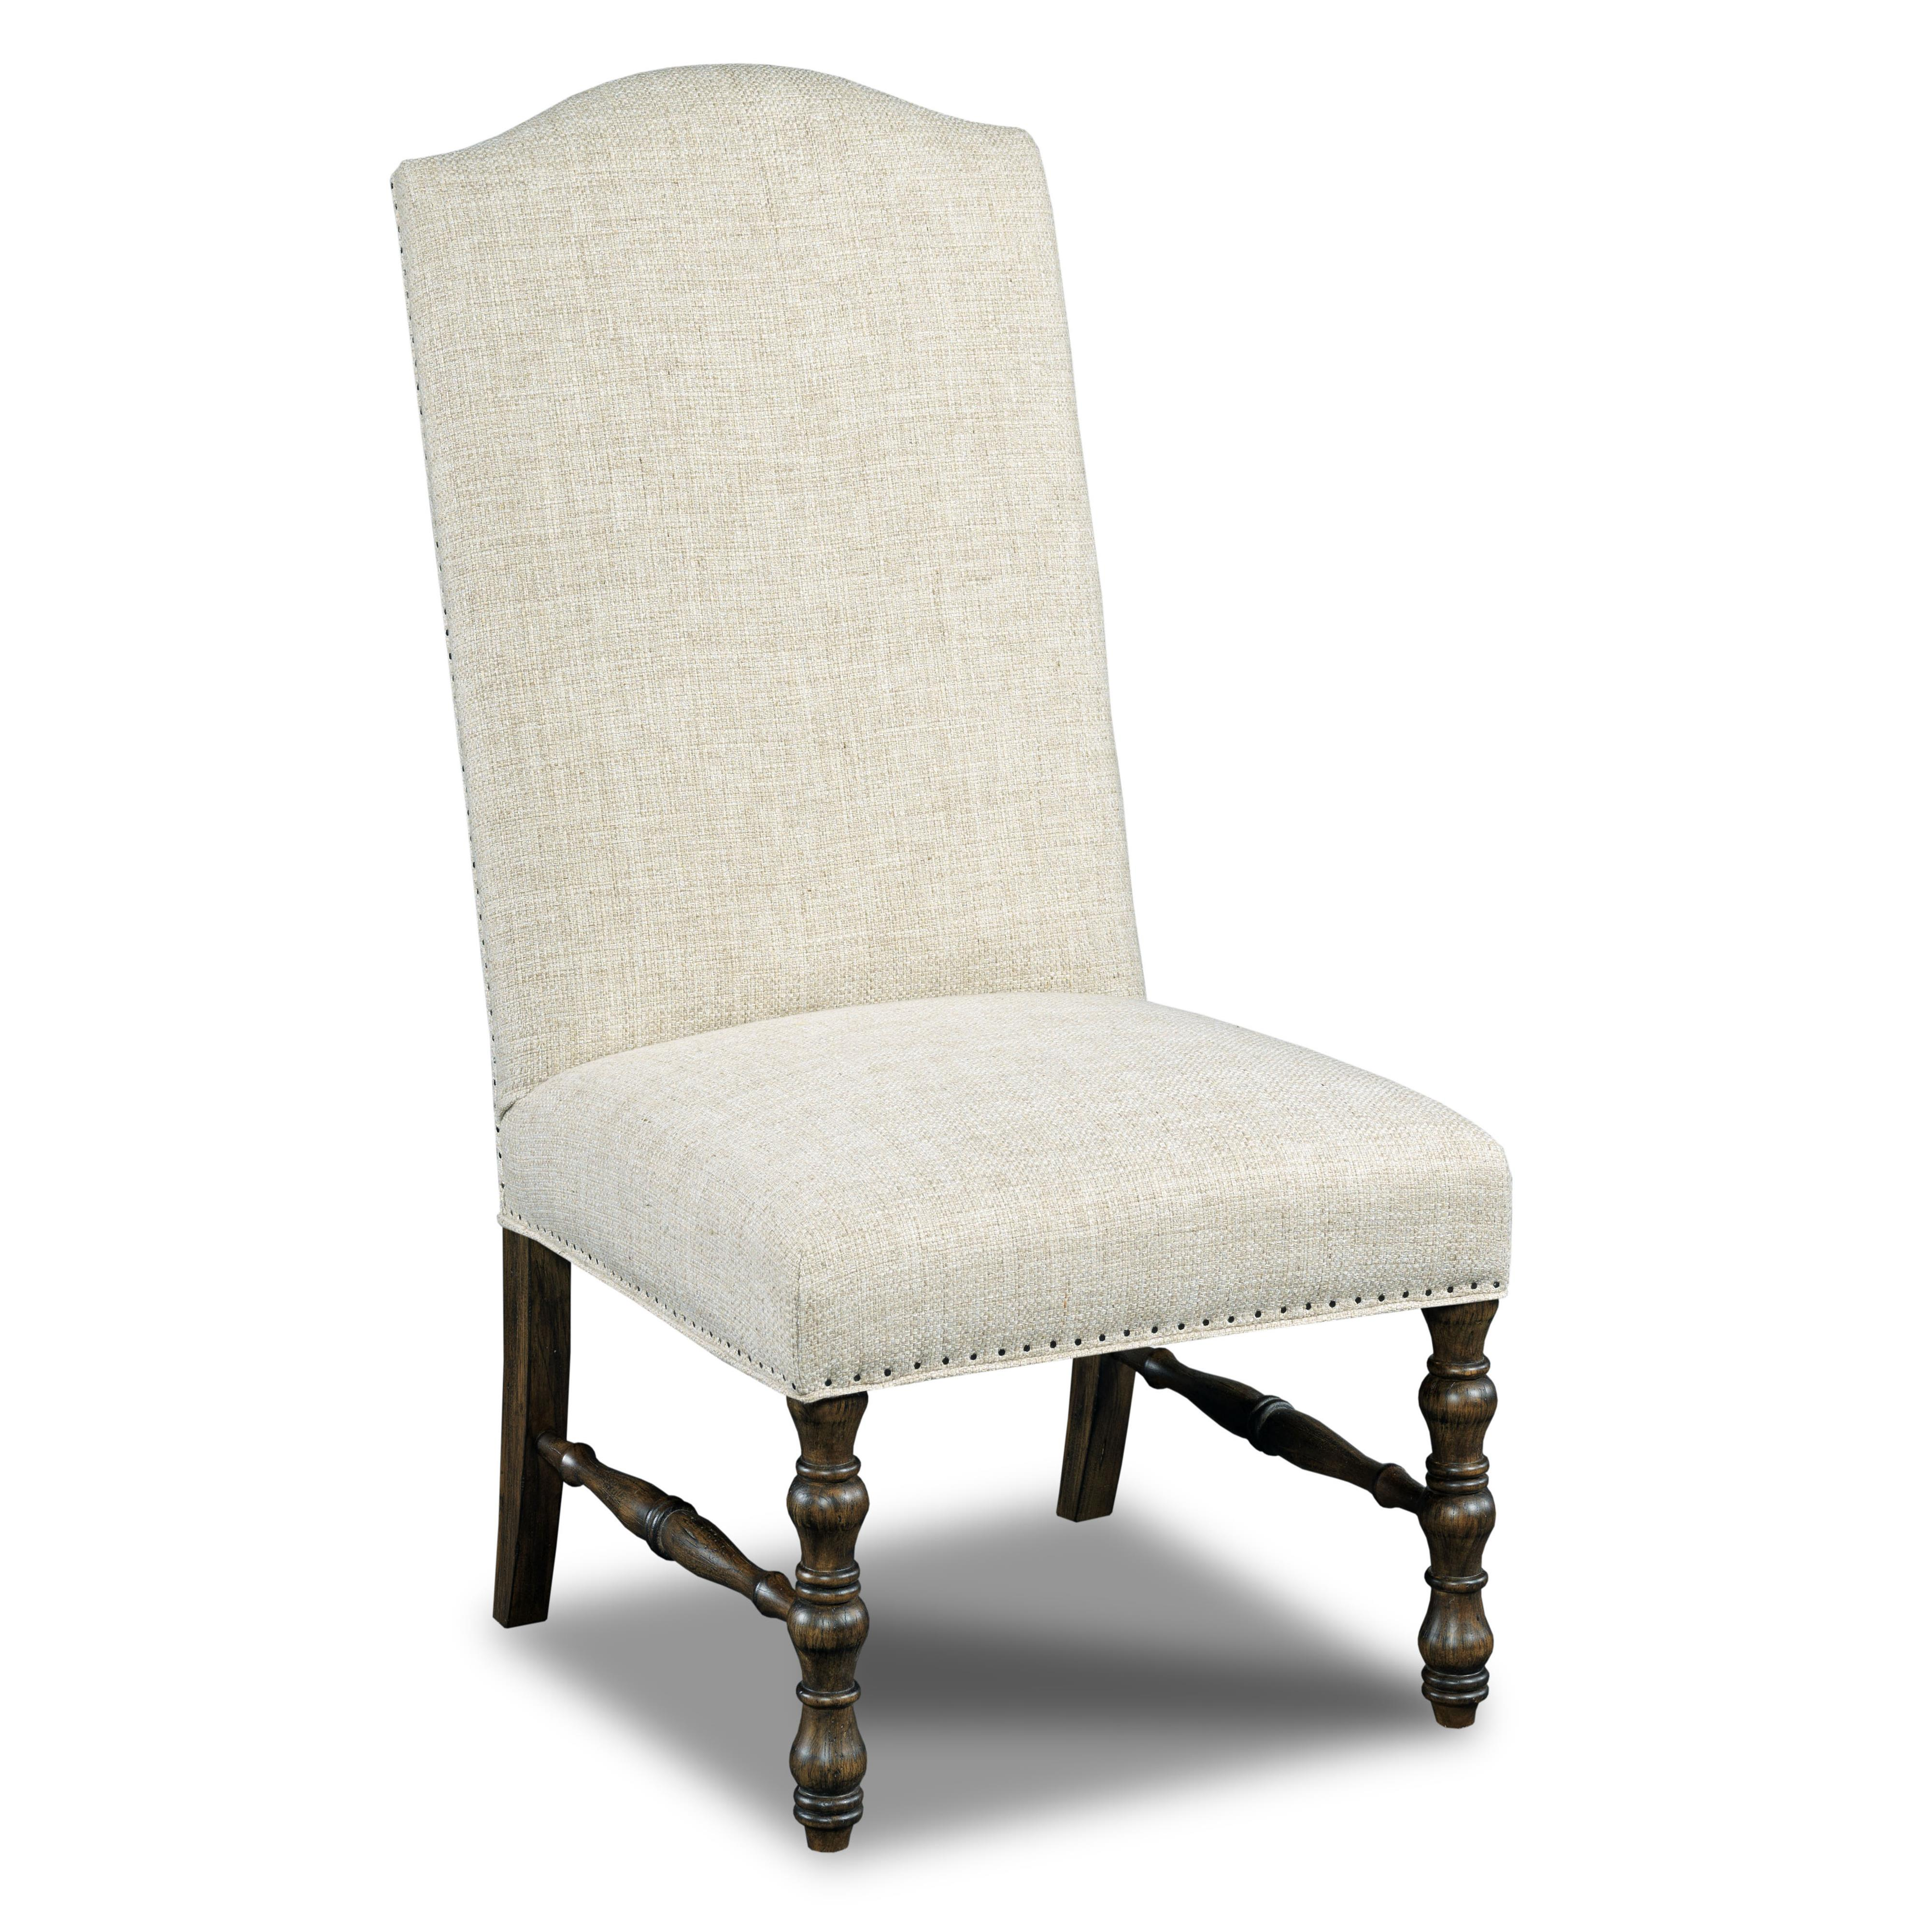 Hooker Furniture Dining Chairs Upholstered Armless Dining